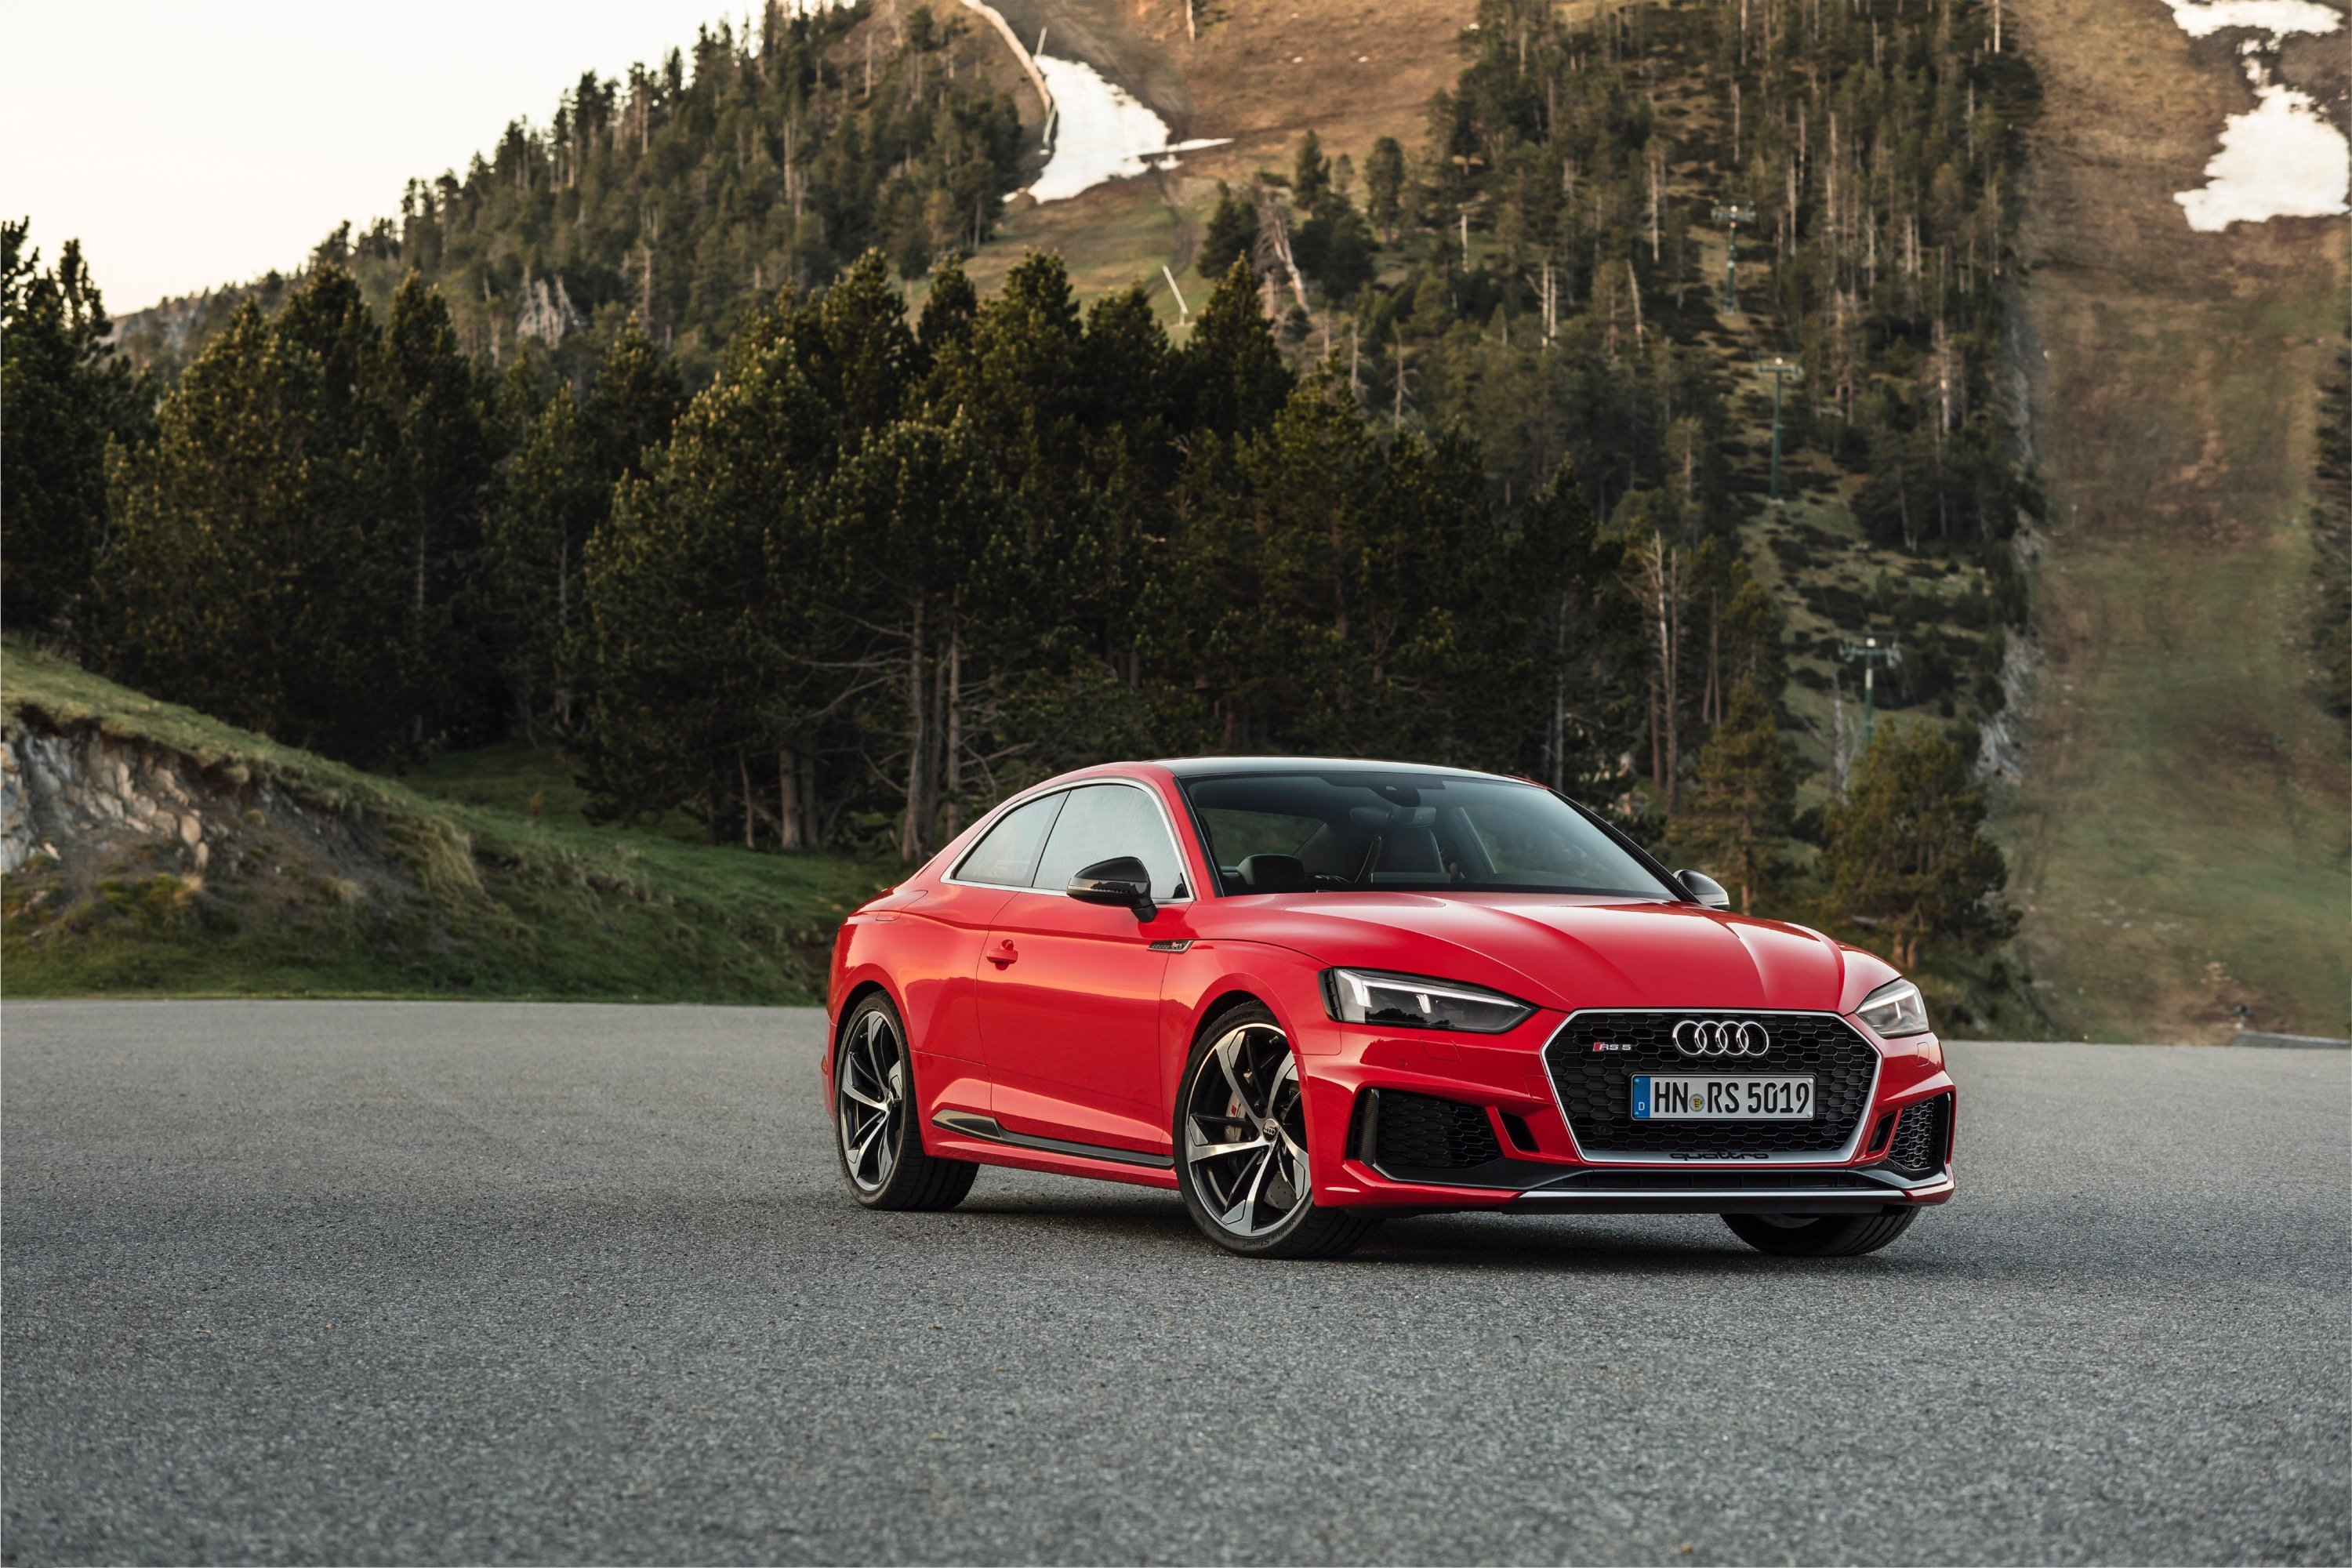 2017 Audi RS5 points to evolutionary design language, Audi ...